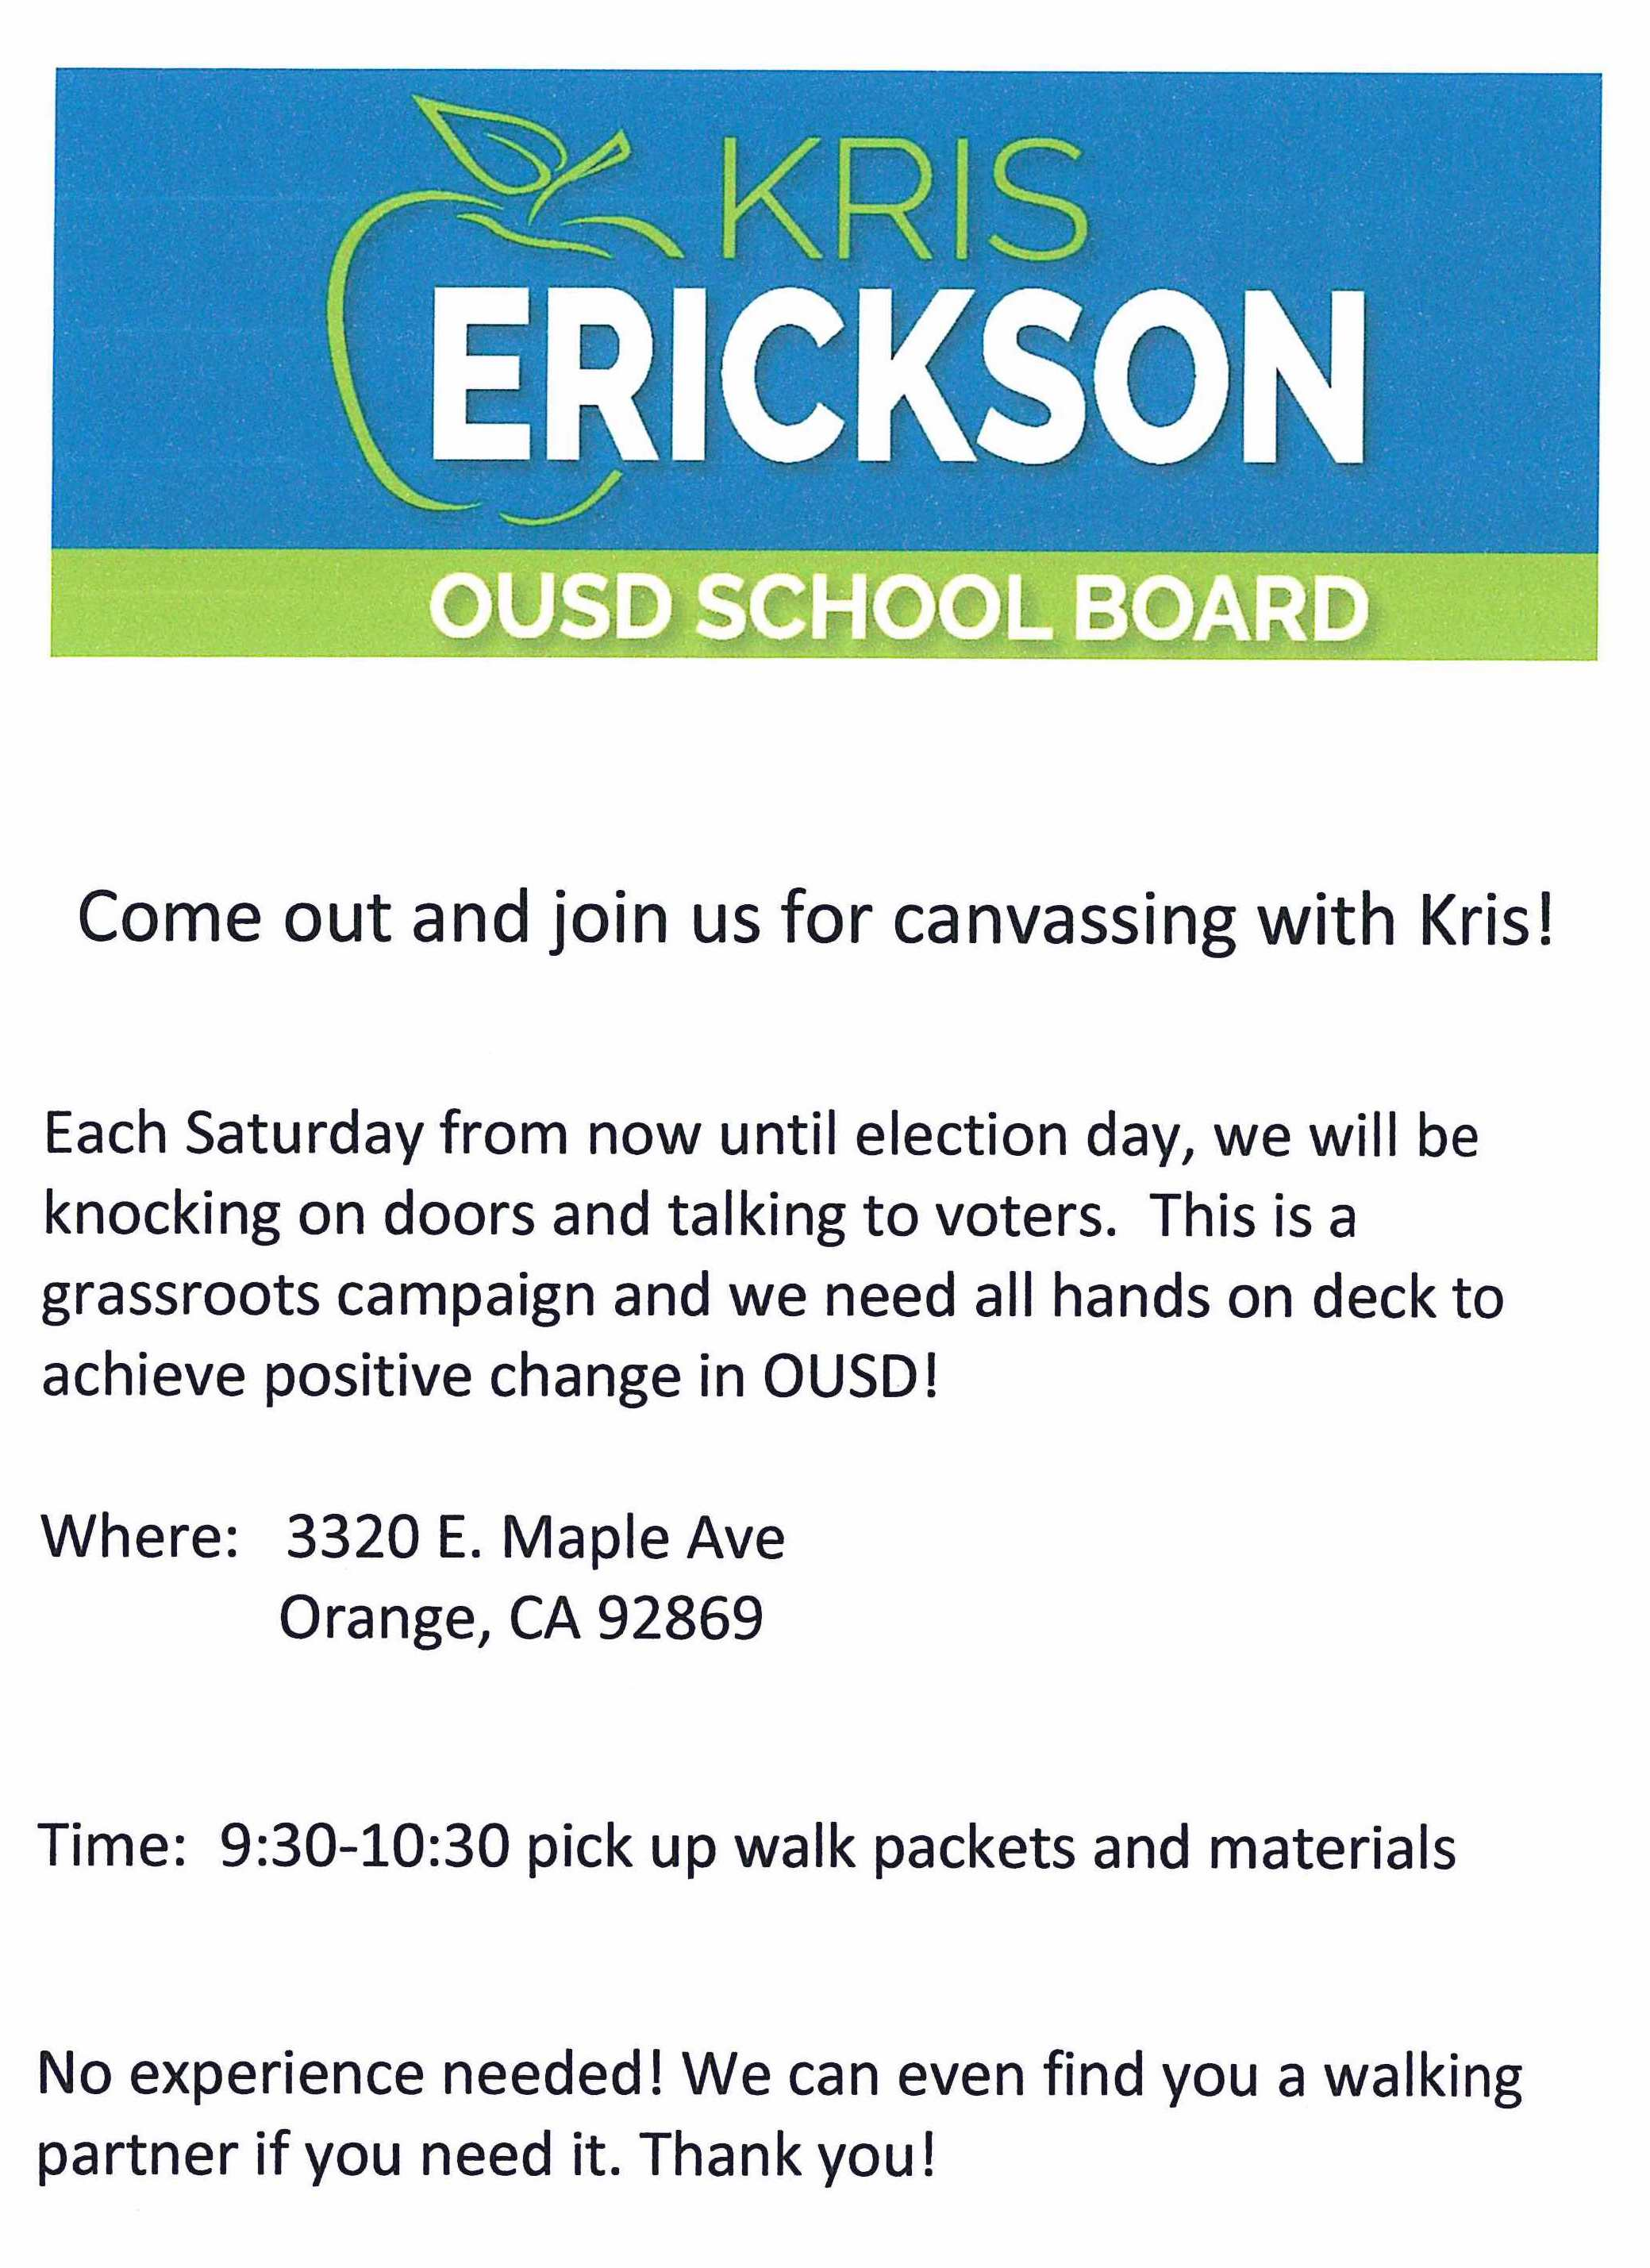 Canvassing Erickson flyer